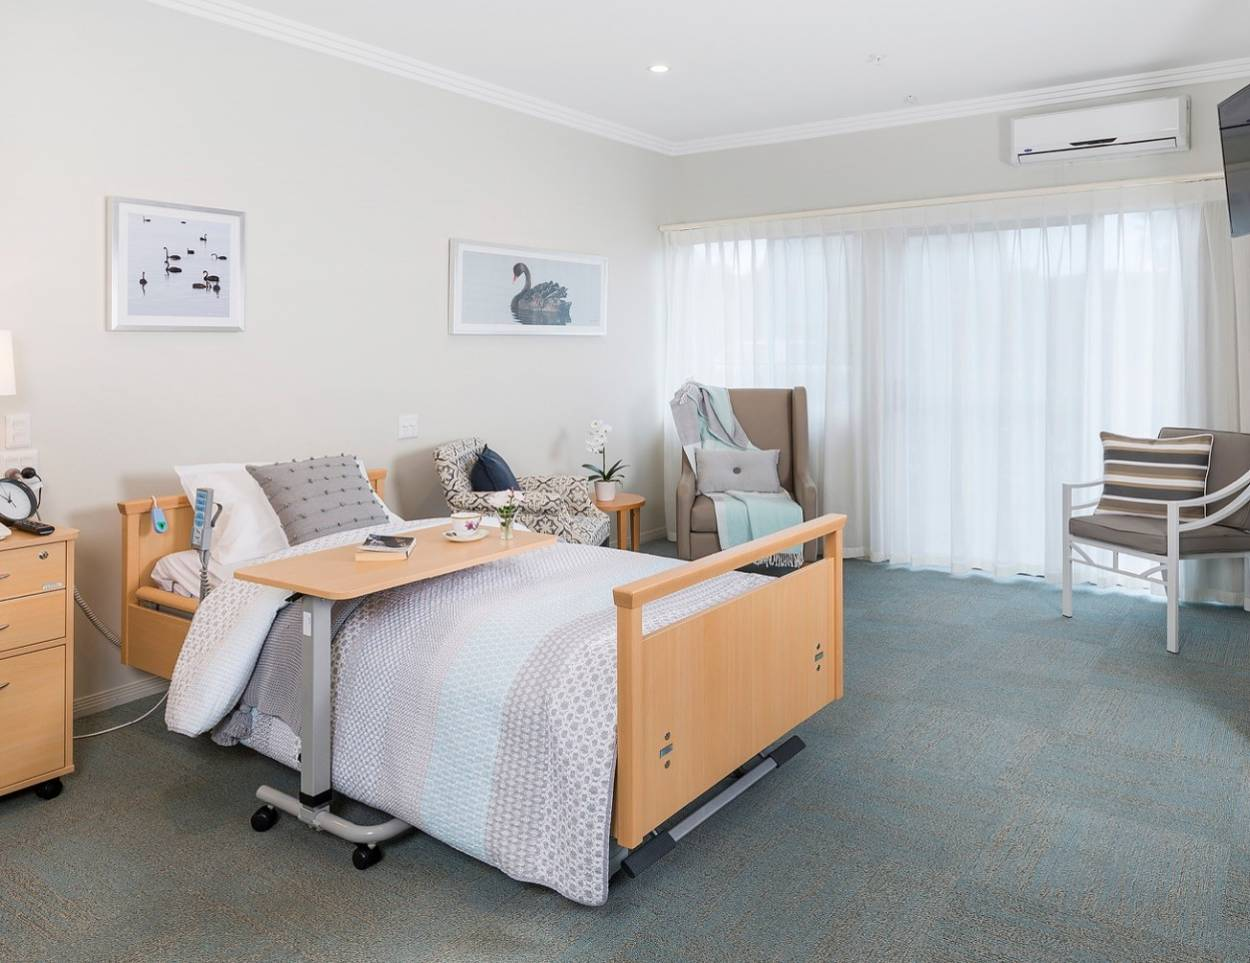 Palm Lake Care Bethania - Memory Lanes Superior Single Suite with Private Ensuite  3 Goodooga Drive - Bethania 4205 Retirement Property for Aged-care-facility